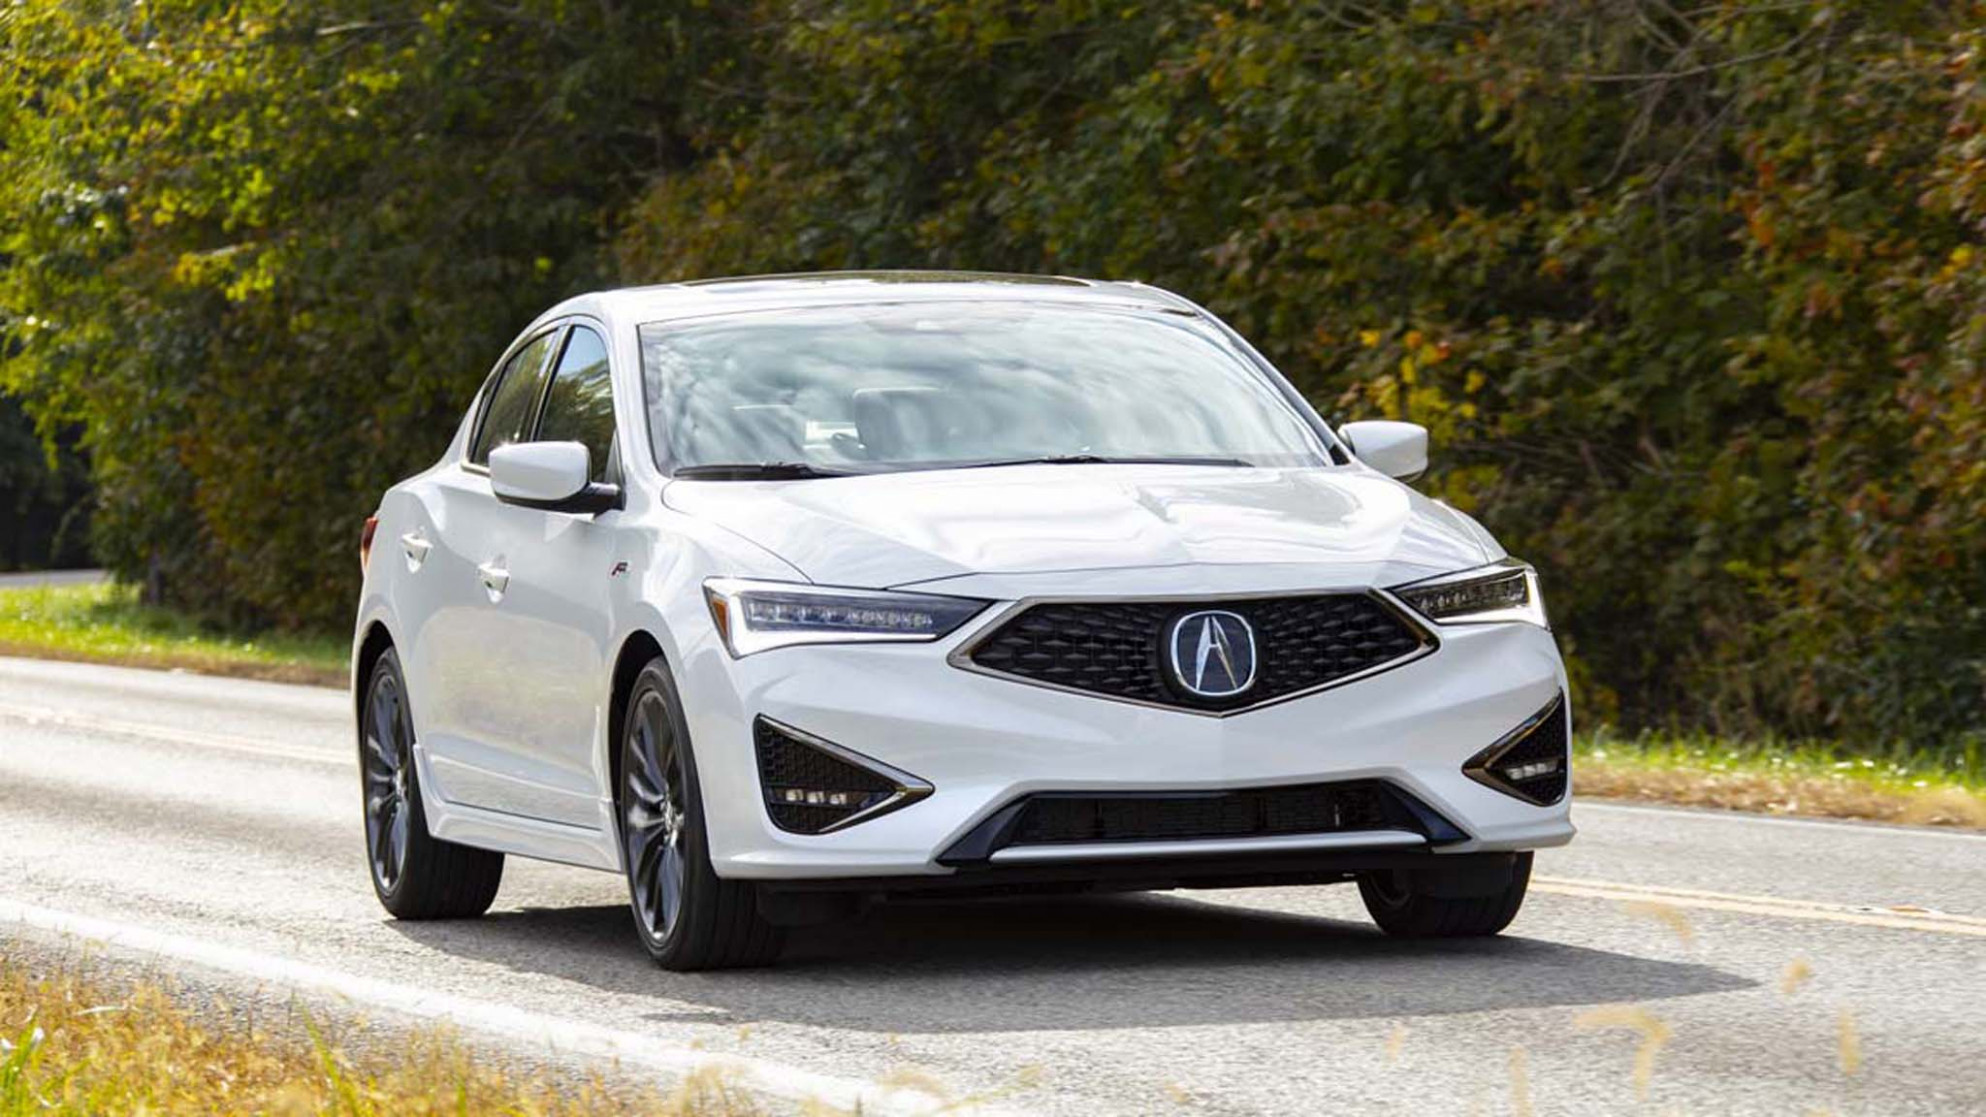 Release Date and Concept When Does Acura Release 2022 Models